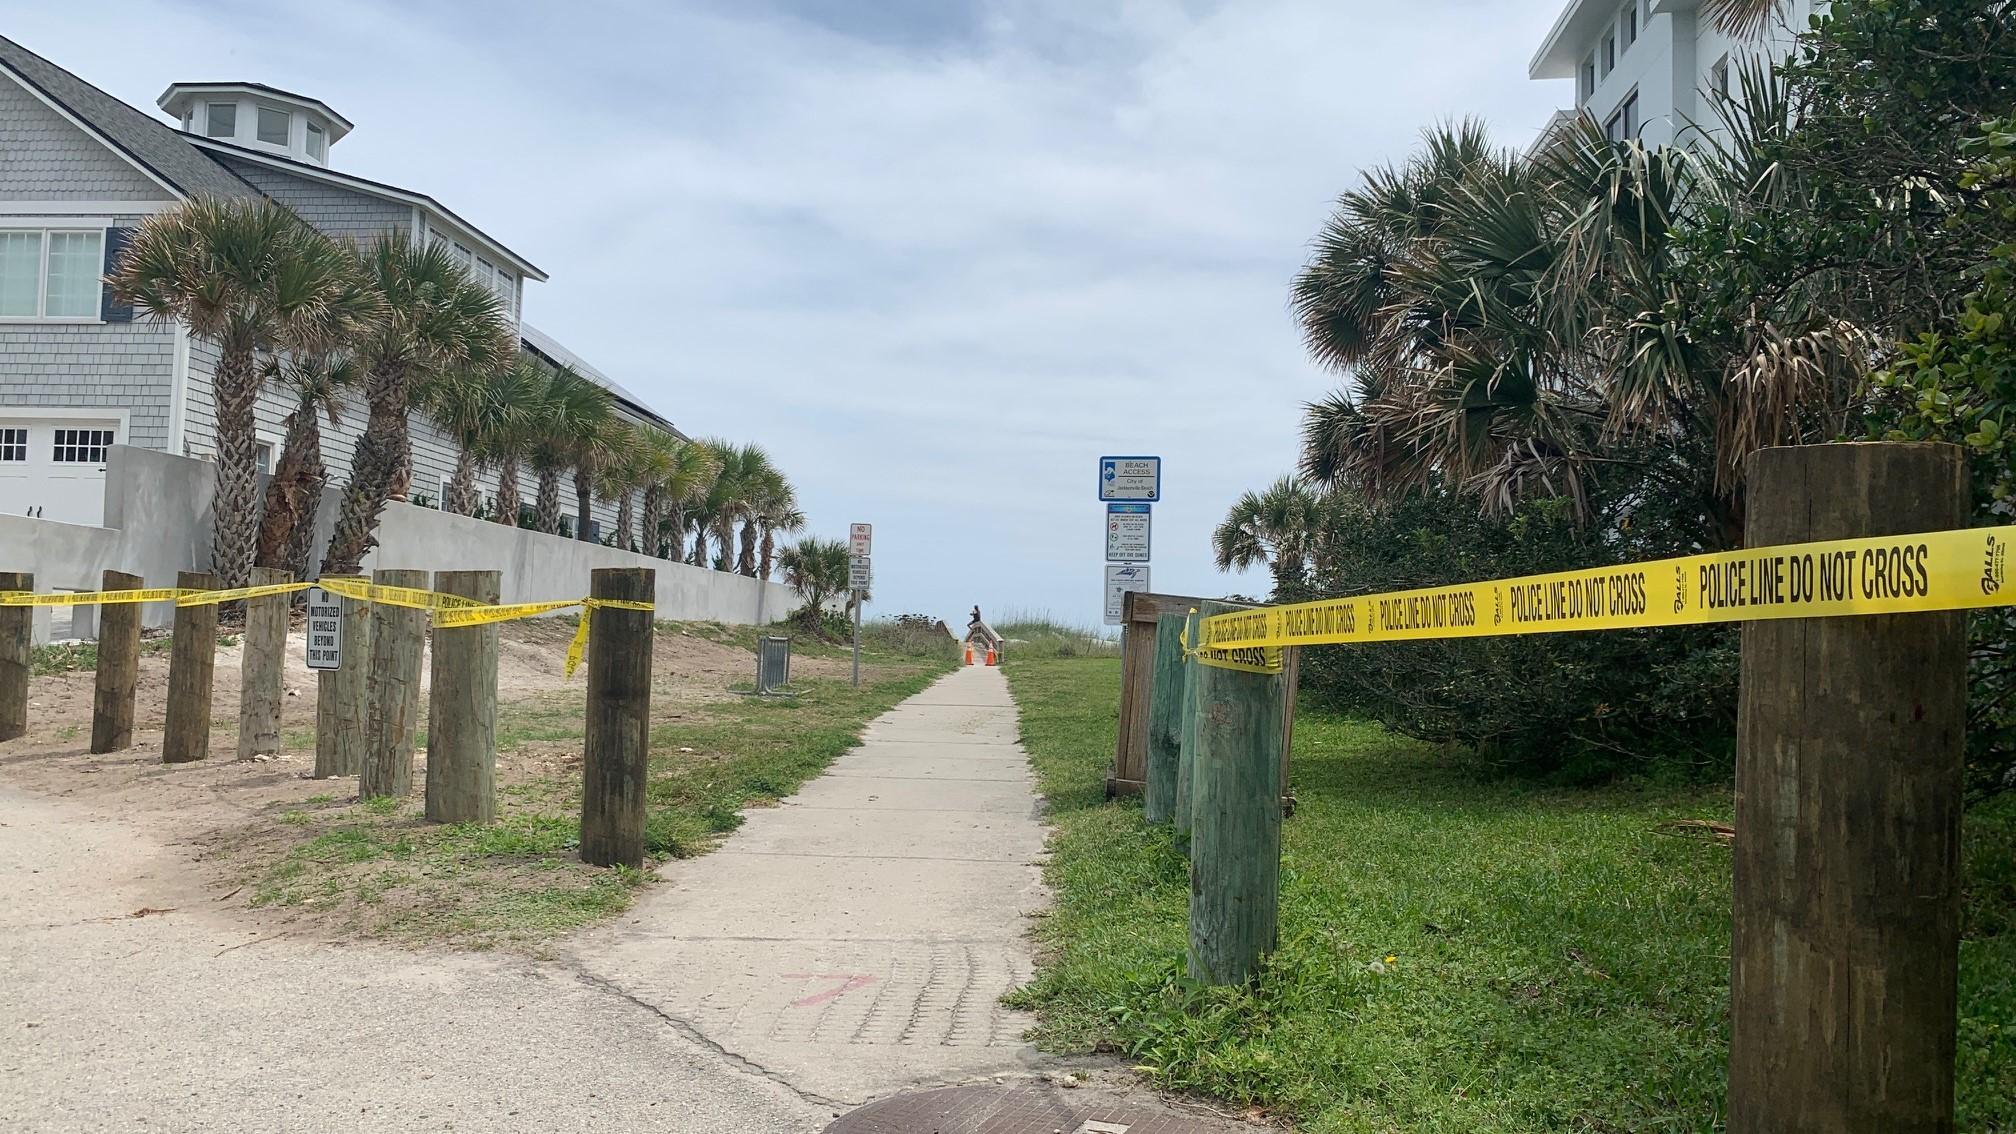 Coronavirus outbreak: Beaches in Jacksonville, Florida reopen amid COVID-19 pandemic